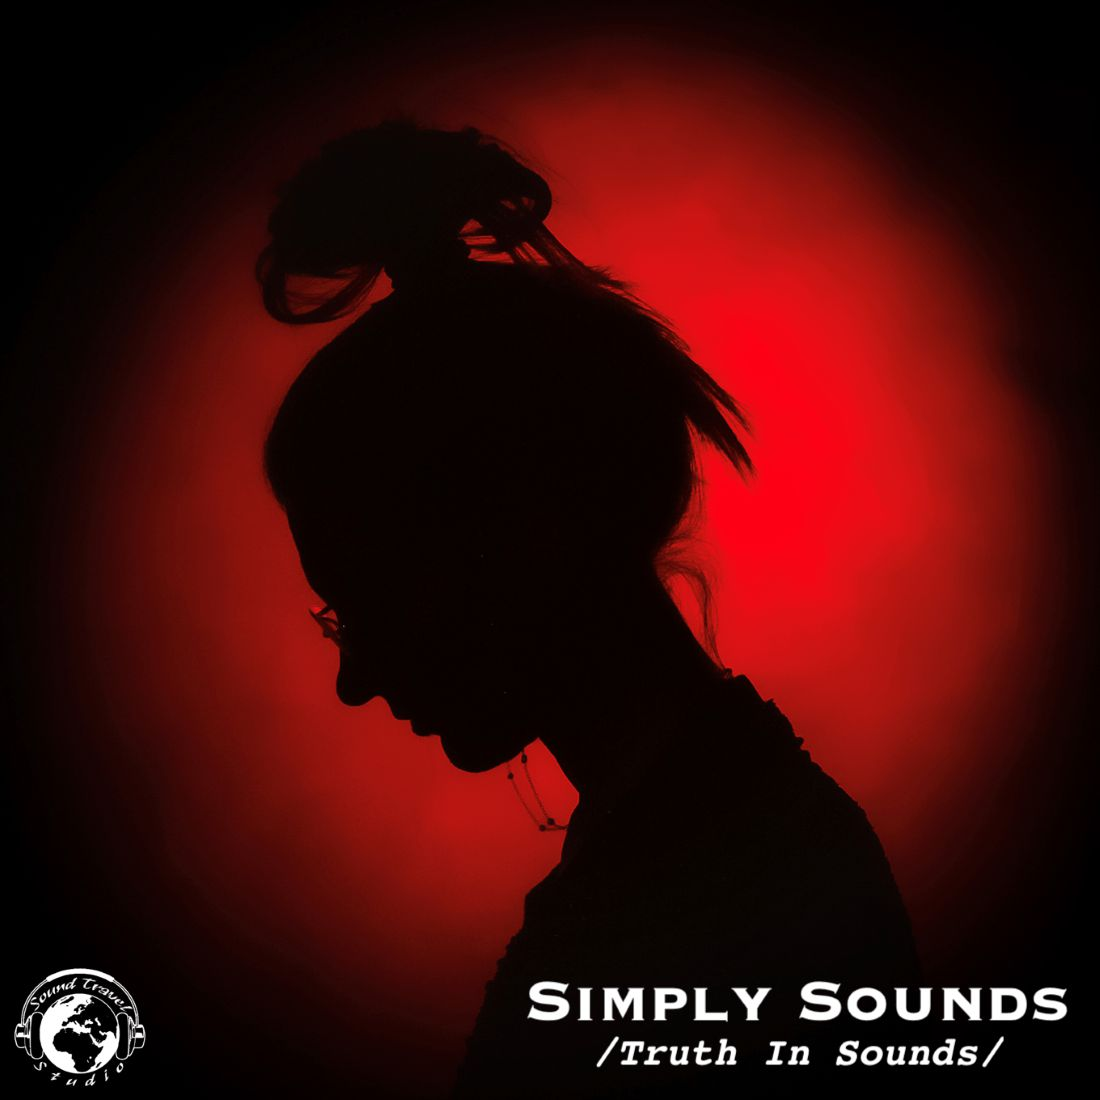 Simply Sounds: Truth In Sounds